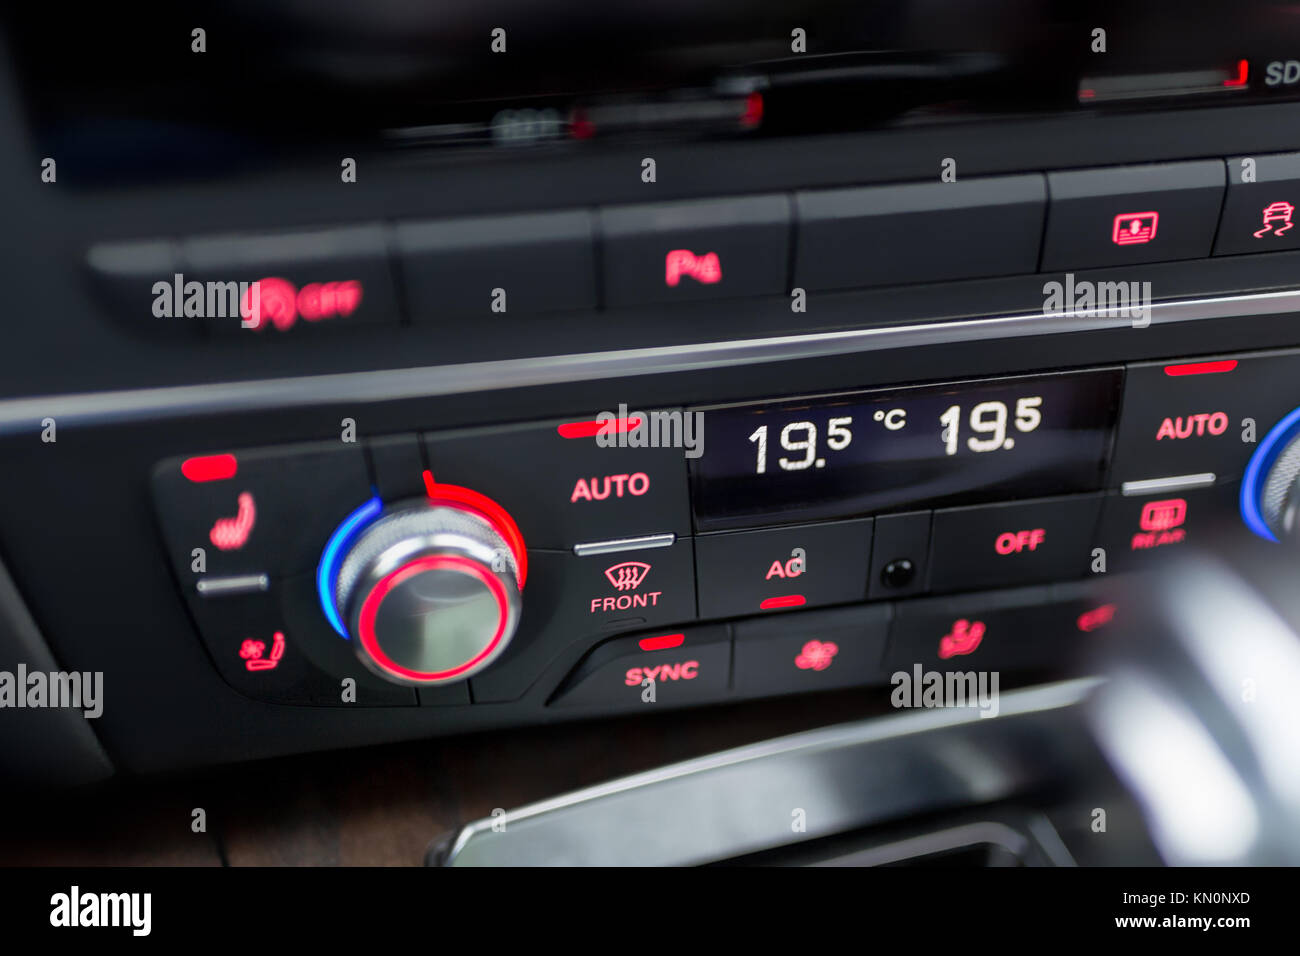 Vehicle Control Panel : Car control panel stock photos